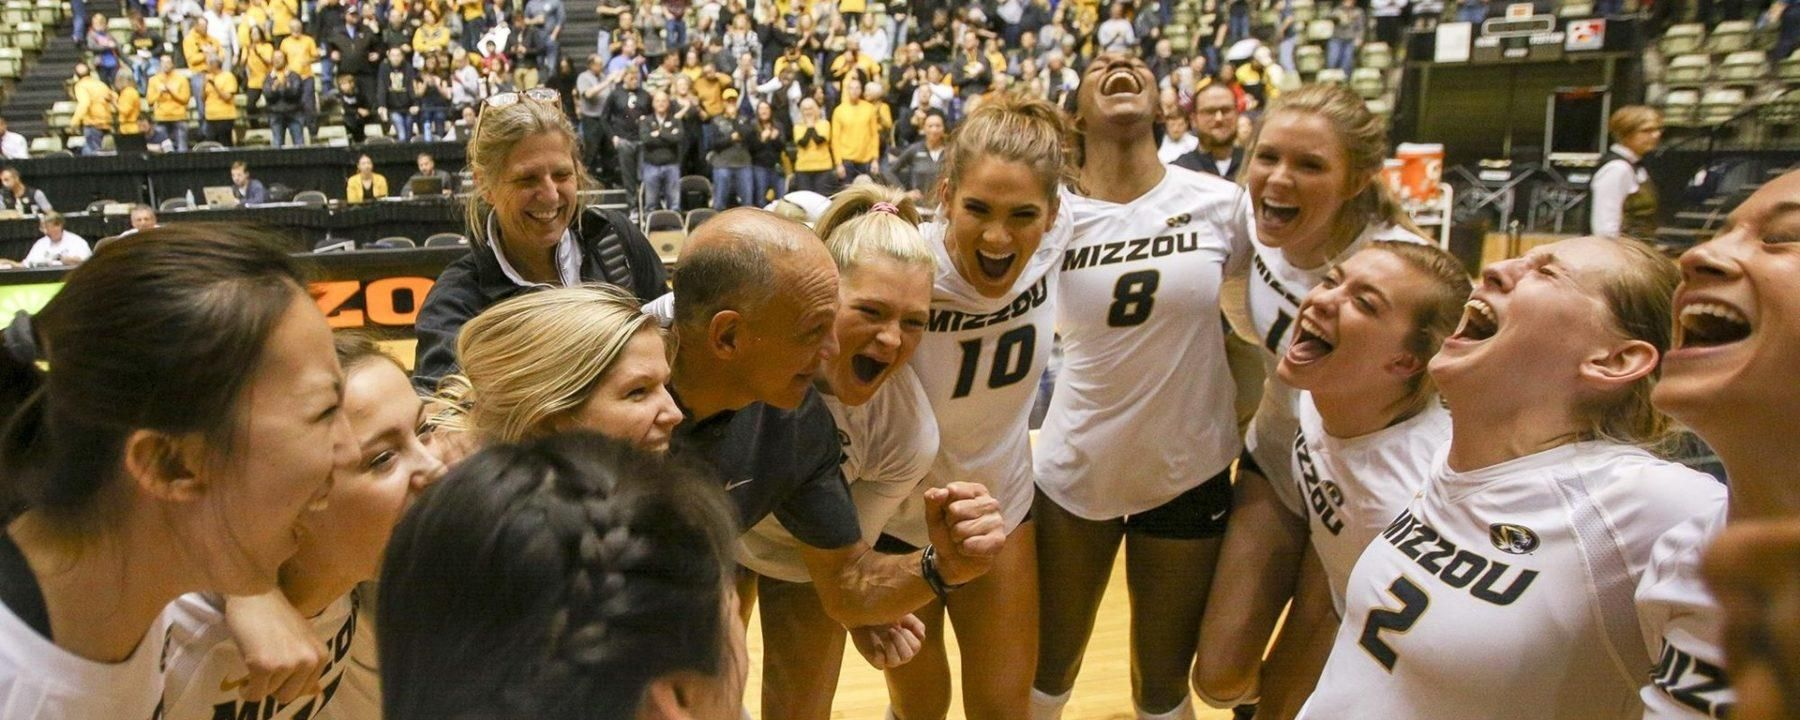 Missouri Brings On Three Freshmen For The 2017 Season With Images Volleyball News Women Volleyball Volleyball Team